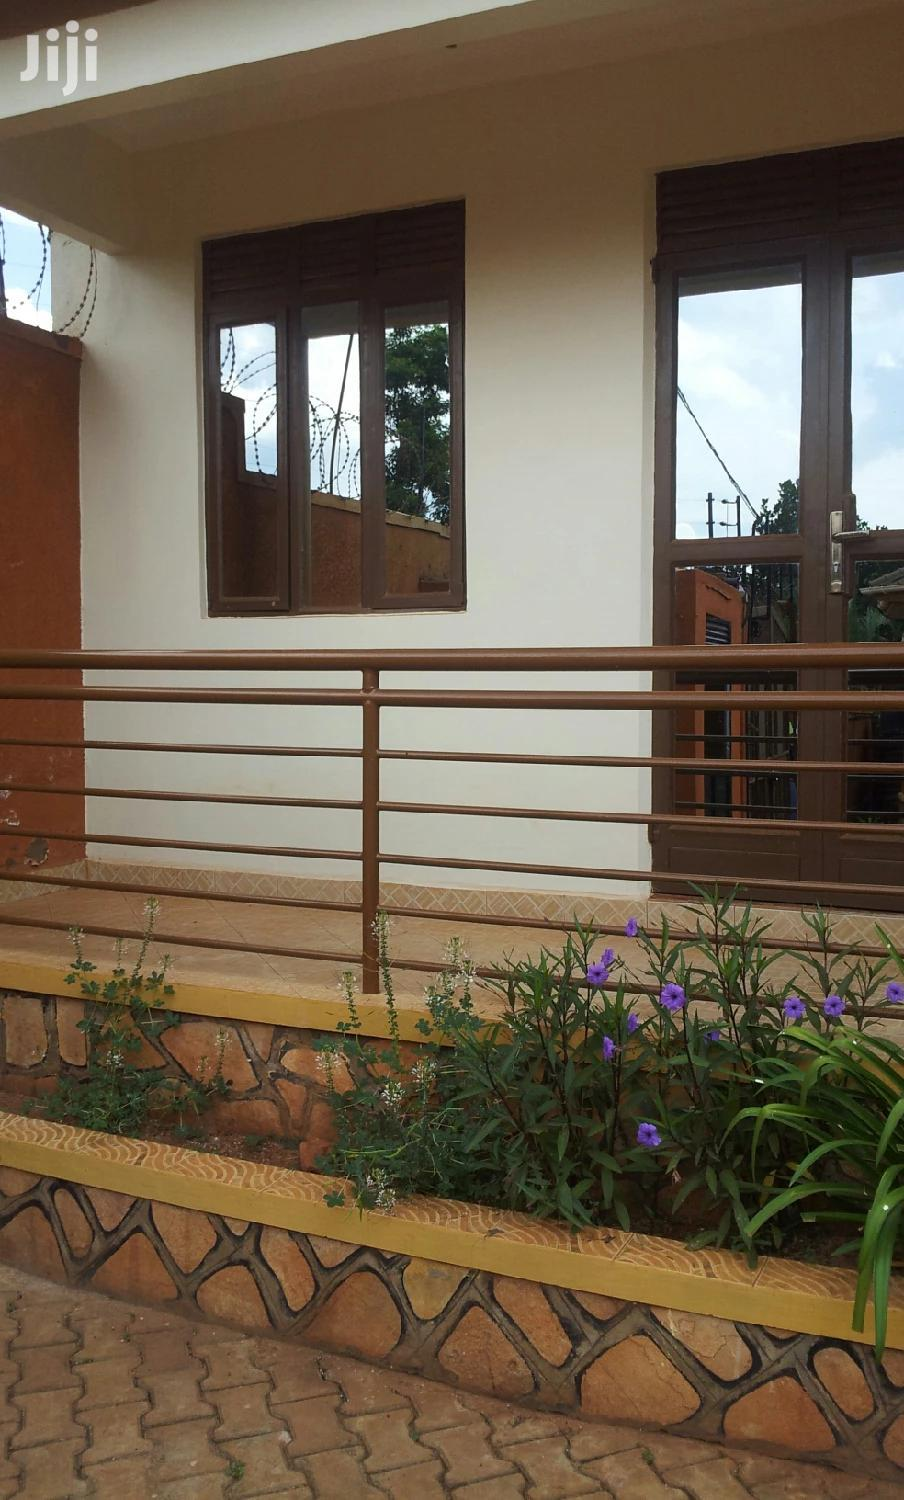 Apartment For Rent In Kisaasi